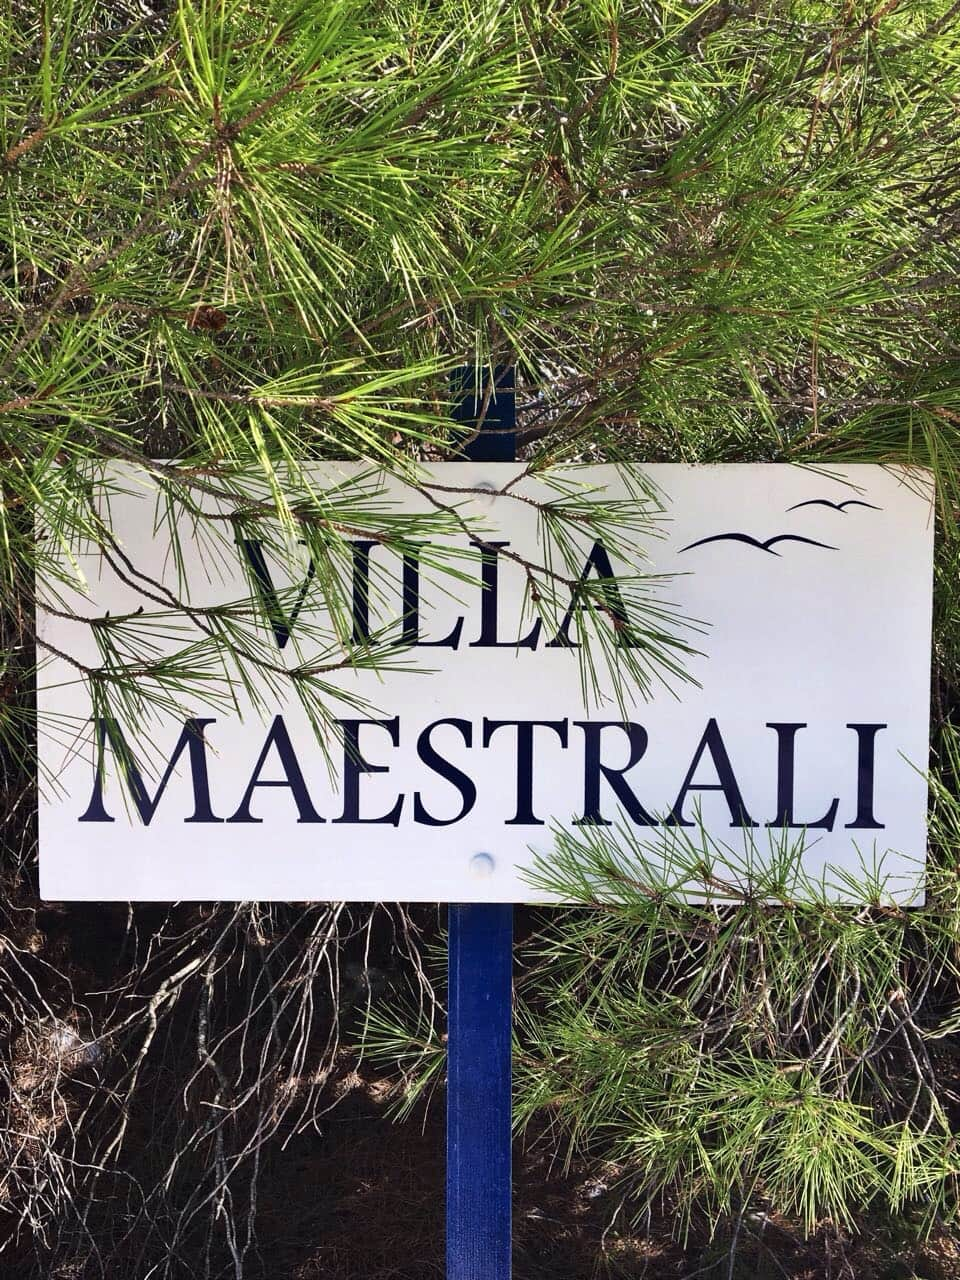 Welcome to Villa Maestrali!